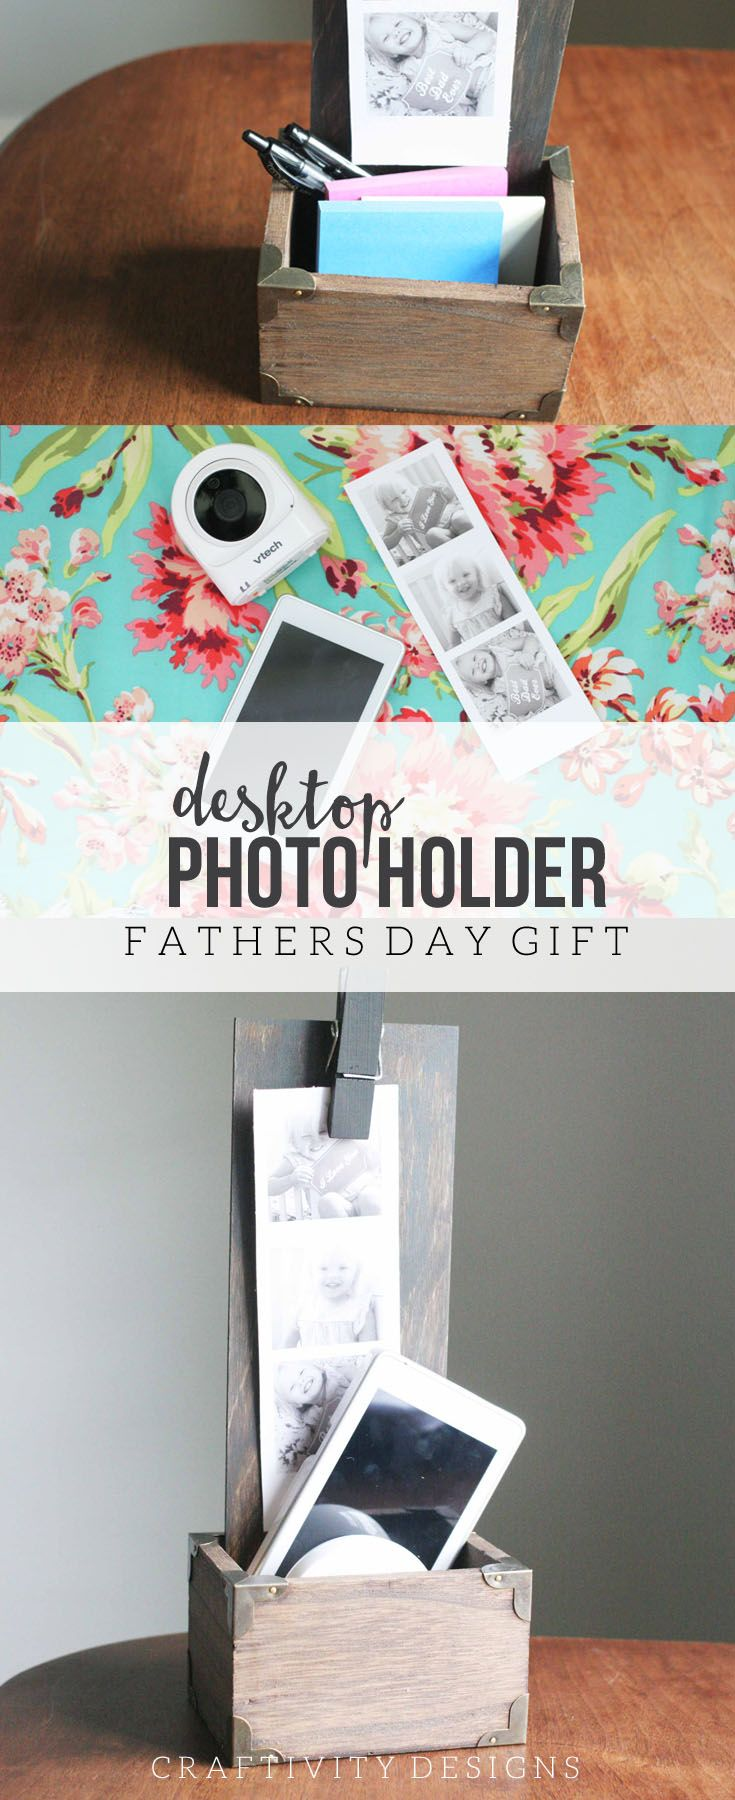 Learn how to make a DIY Desktop Photo Holder. This handmade gift features free printables for a Father's Day photo shoot. Pair the photos with the DIY Desk Organizer, and include a great gadget -- like a new baby monitor -- for a techy and personalized Father's Day Gift! #NewDadMustHaves #ad